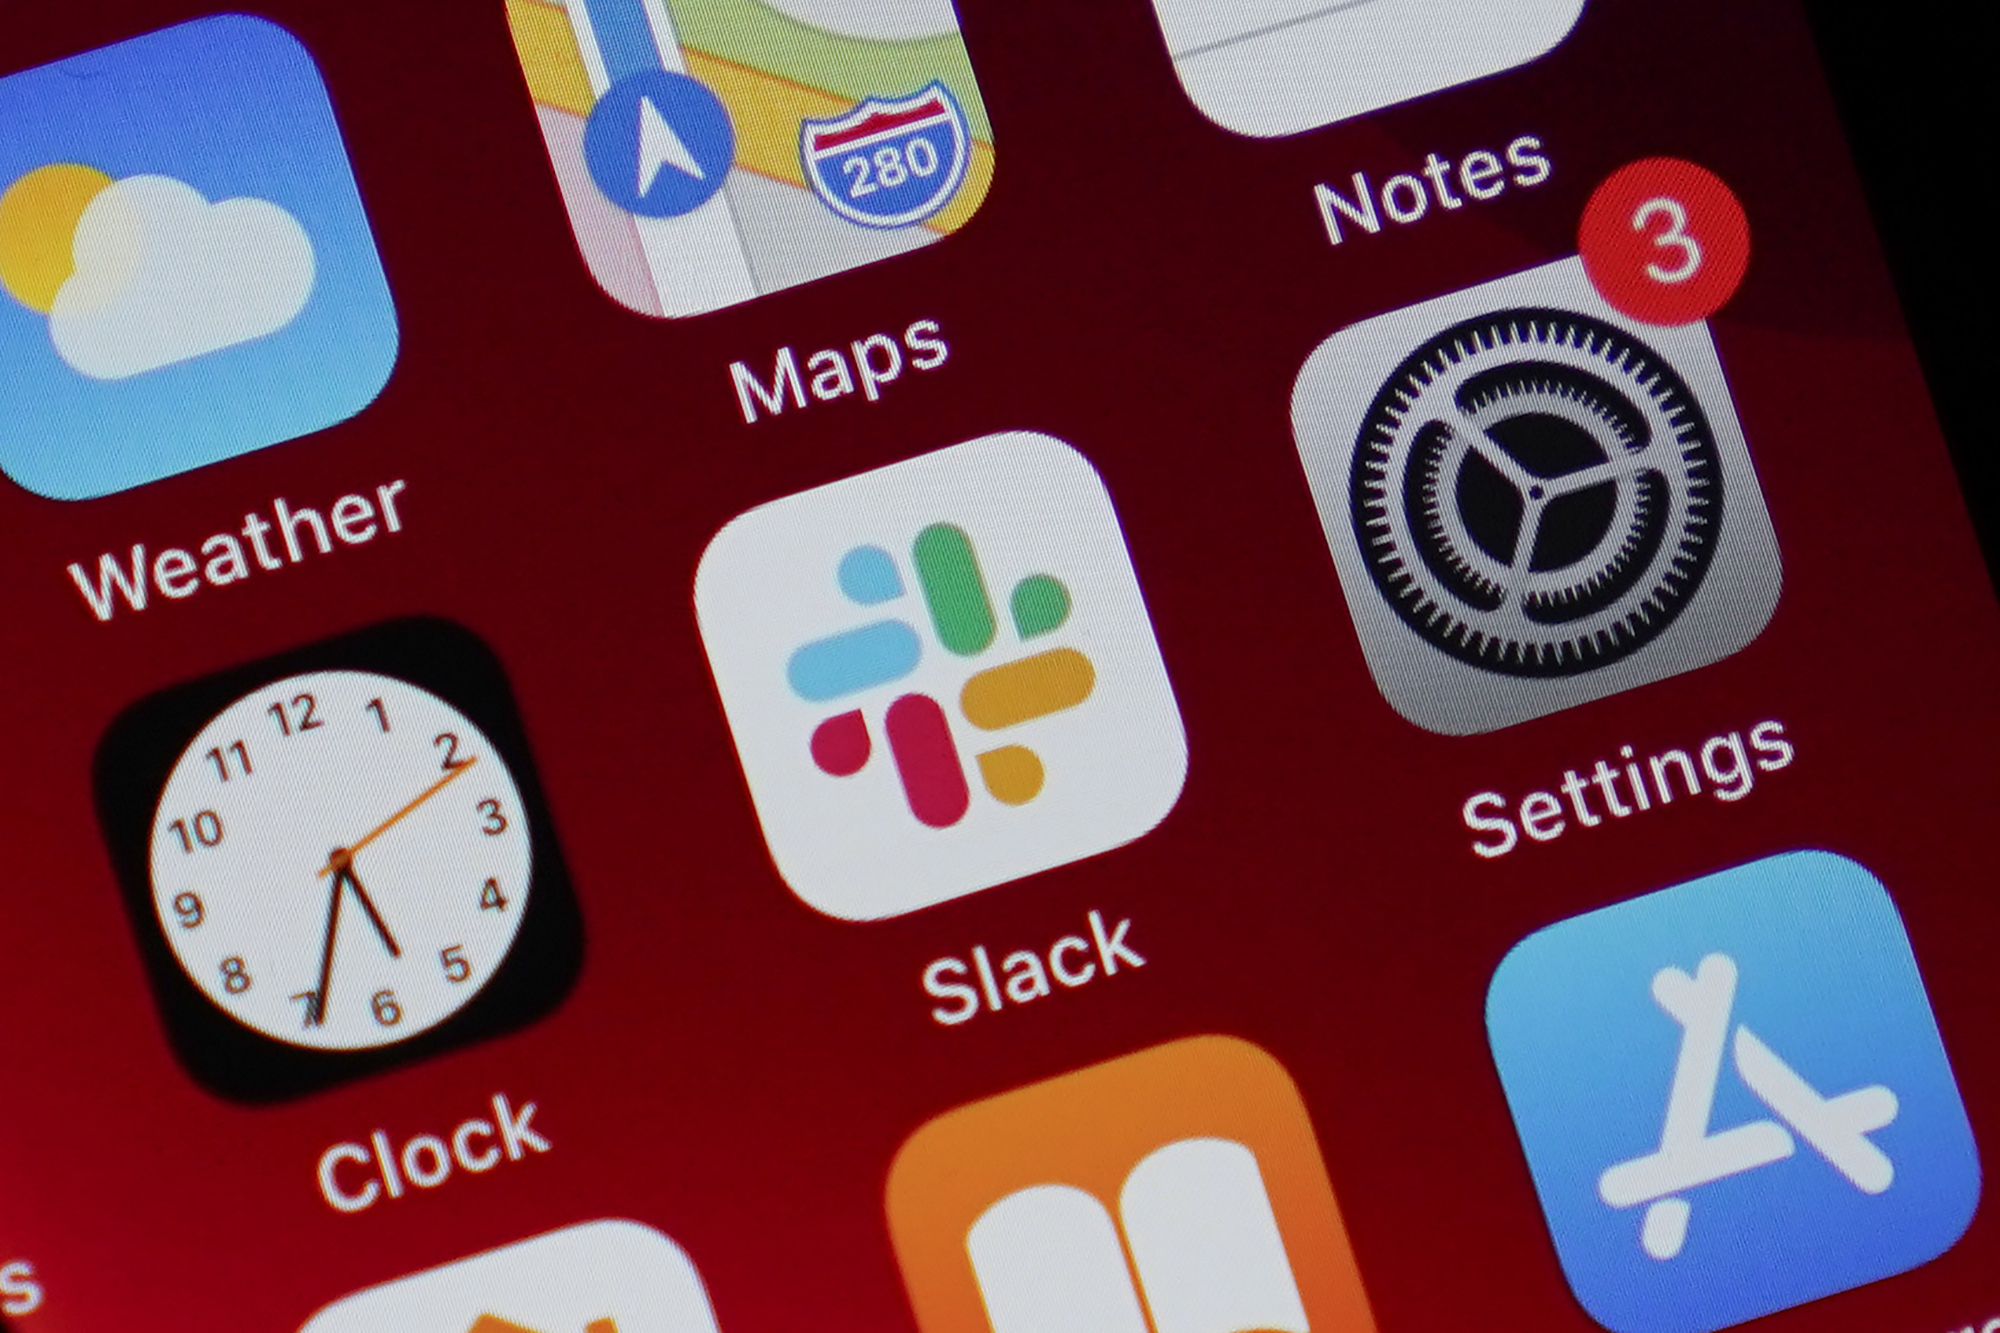 The Slack app icon is displayed on an iPhone screen, Tuesday, Dec. 1, 2020, in Long Beach, Calif. Apple has called on everyone to update their iPhones again to deal with security bugs.